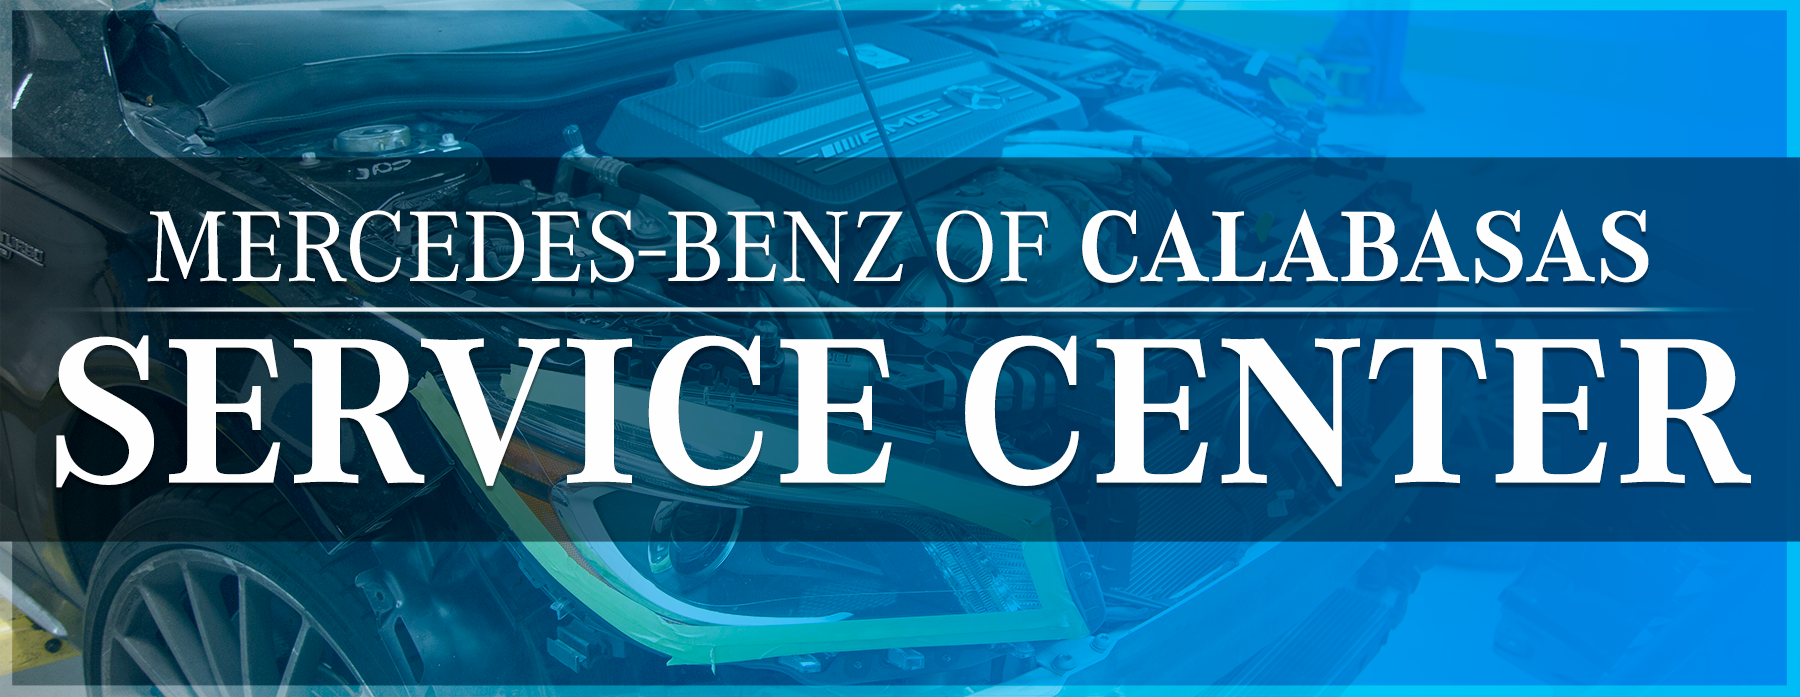 Mercedes of Calabasas Service Center